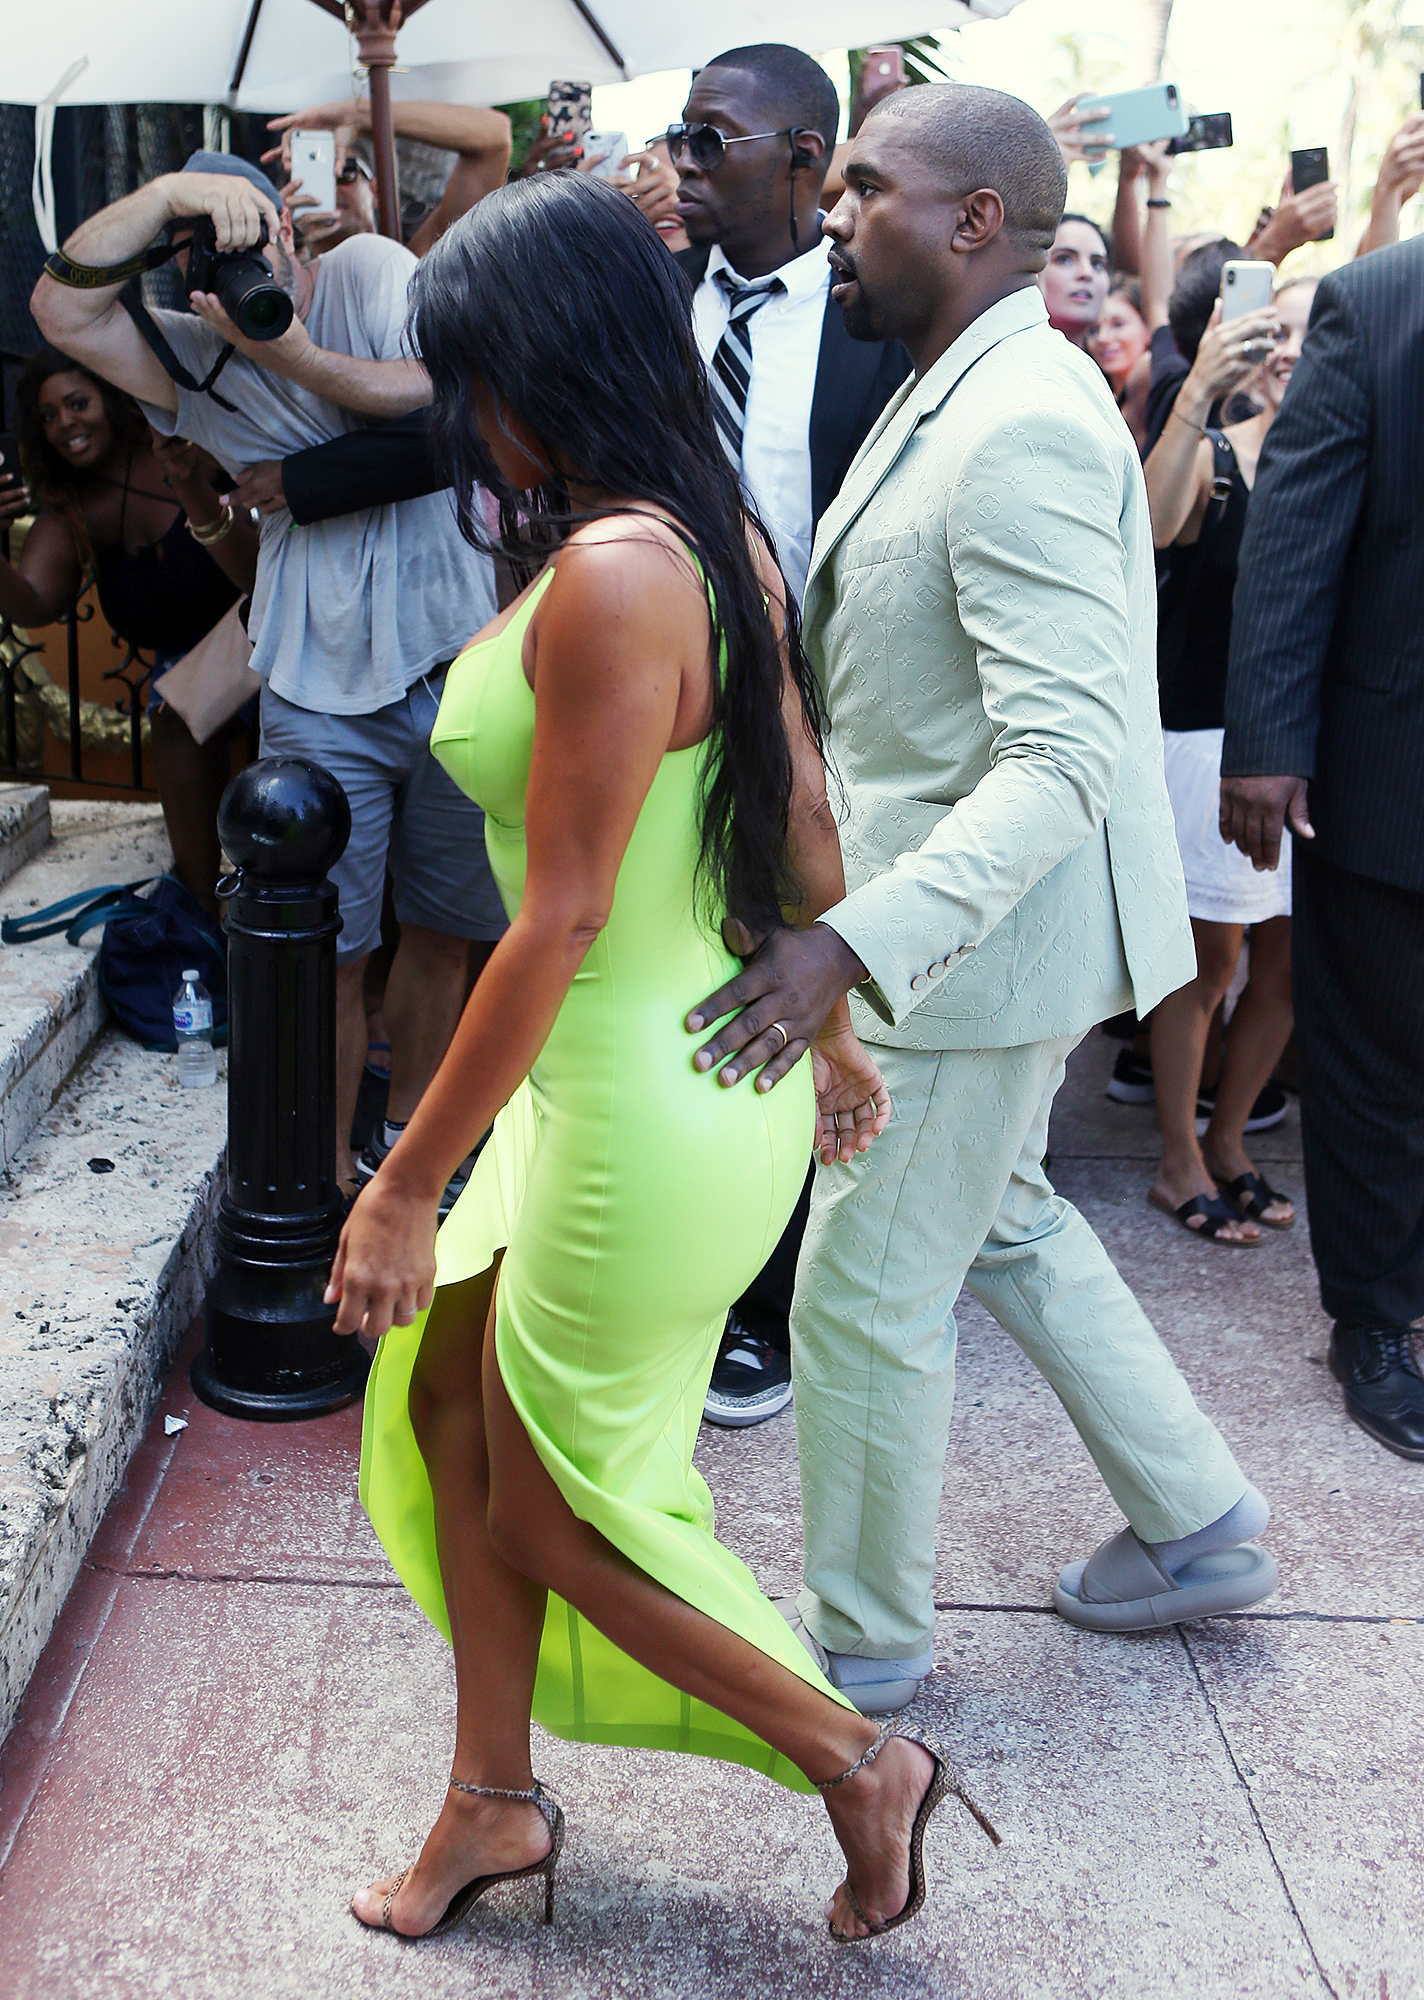 Kim Kardashian Kanye West 2 Chainz Wedding Ice Cream Date - West led Kardashian through the crowd with a sweet gesture, placing his hand at the small of her back.